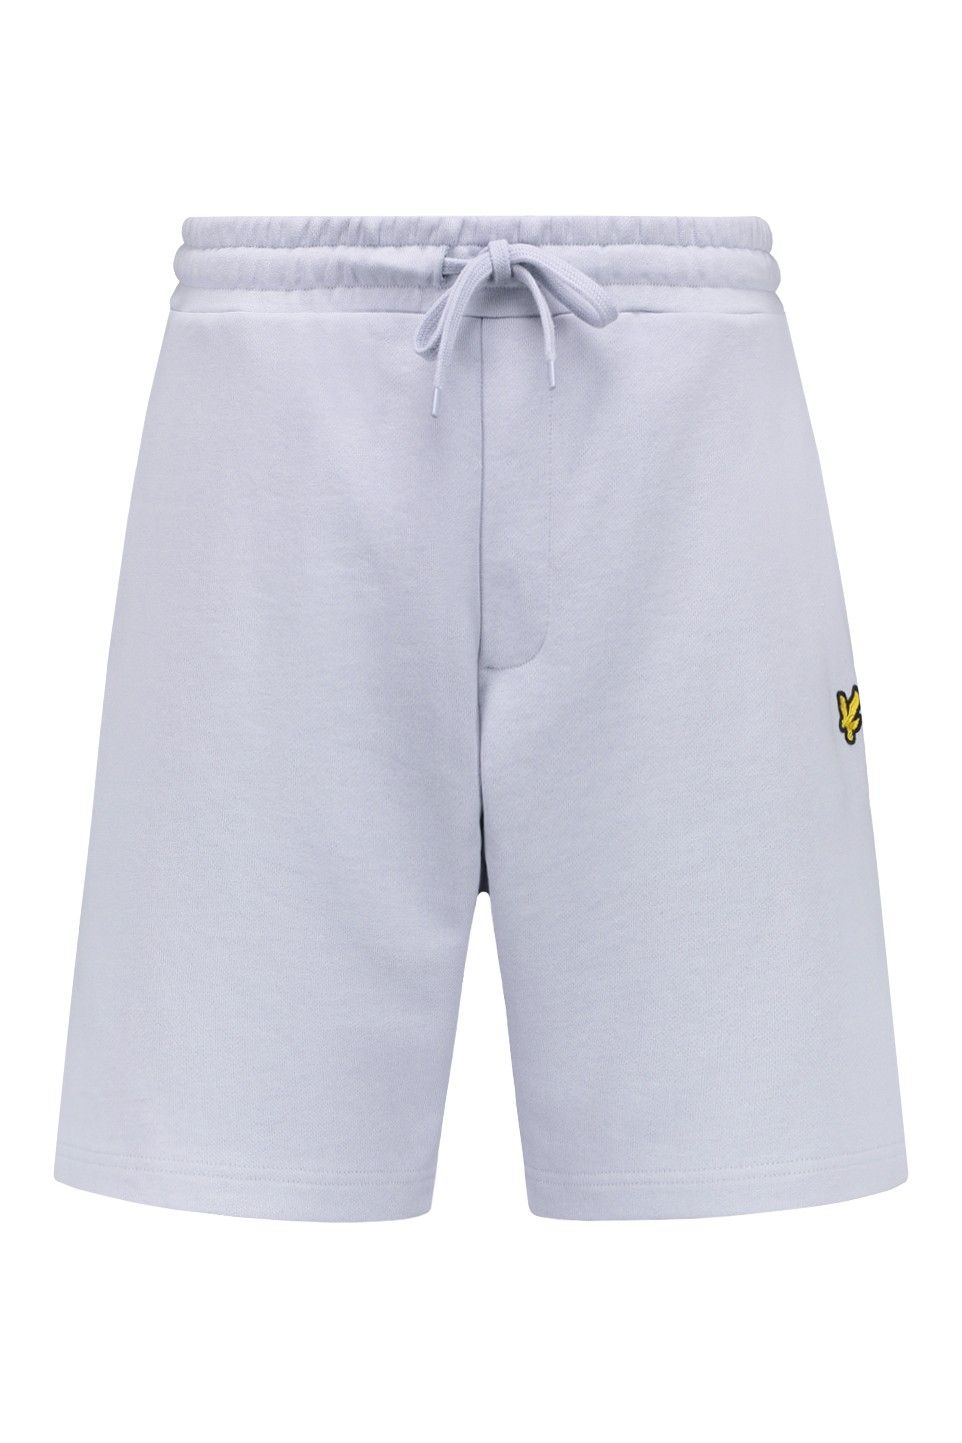 Zwembroek Short.Lyle And Scott Sweat Short Cloud Blue Ml414vtr Z468 Man Bloom